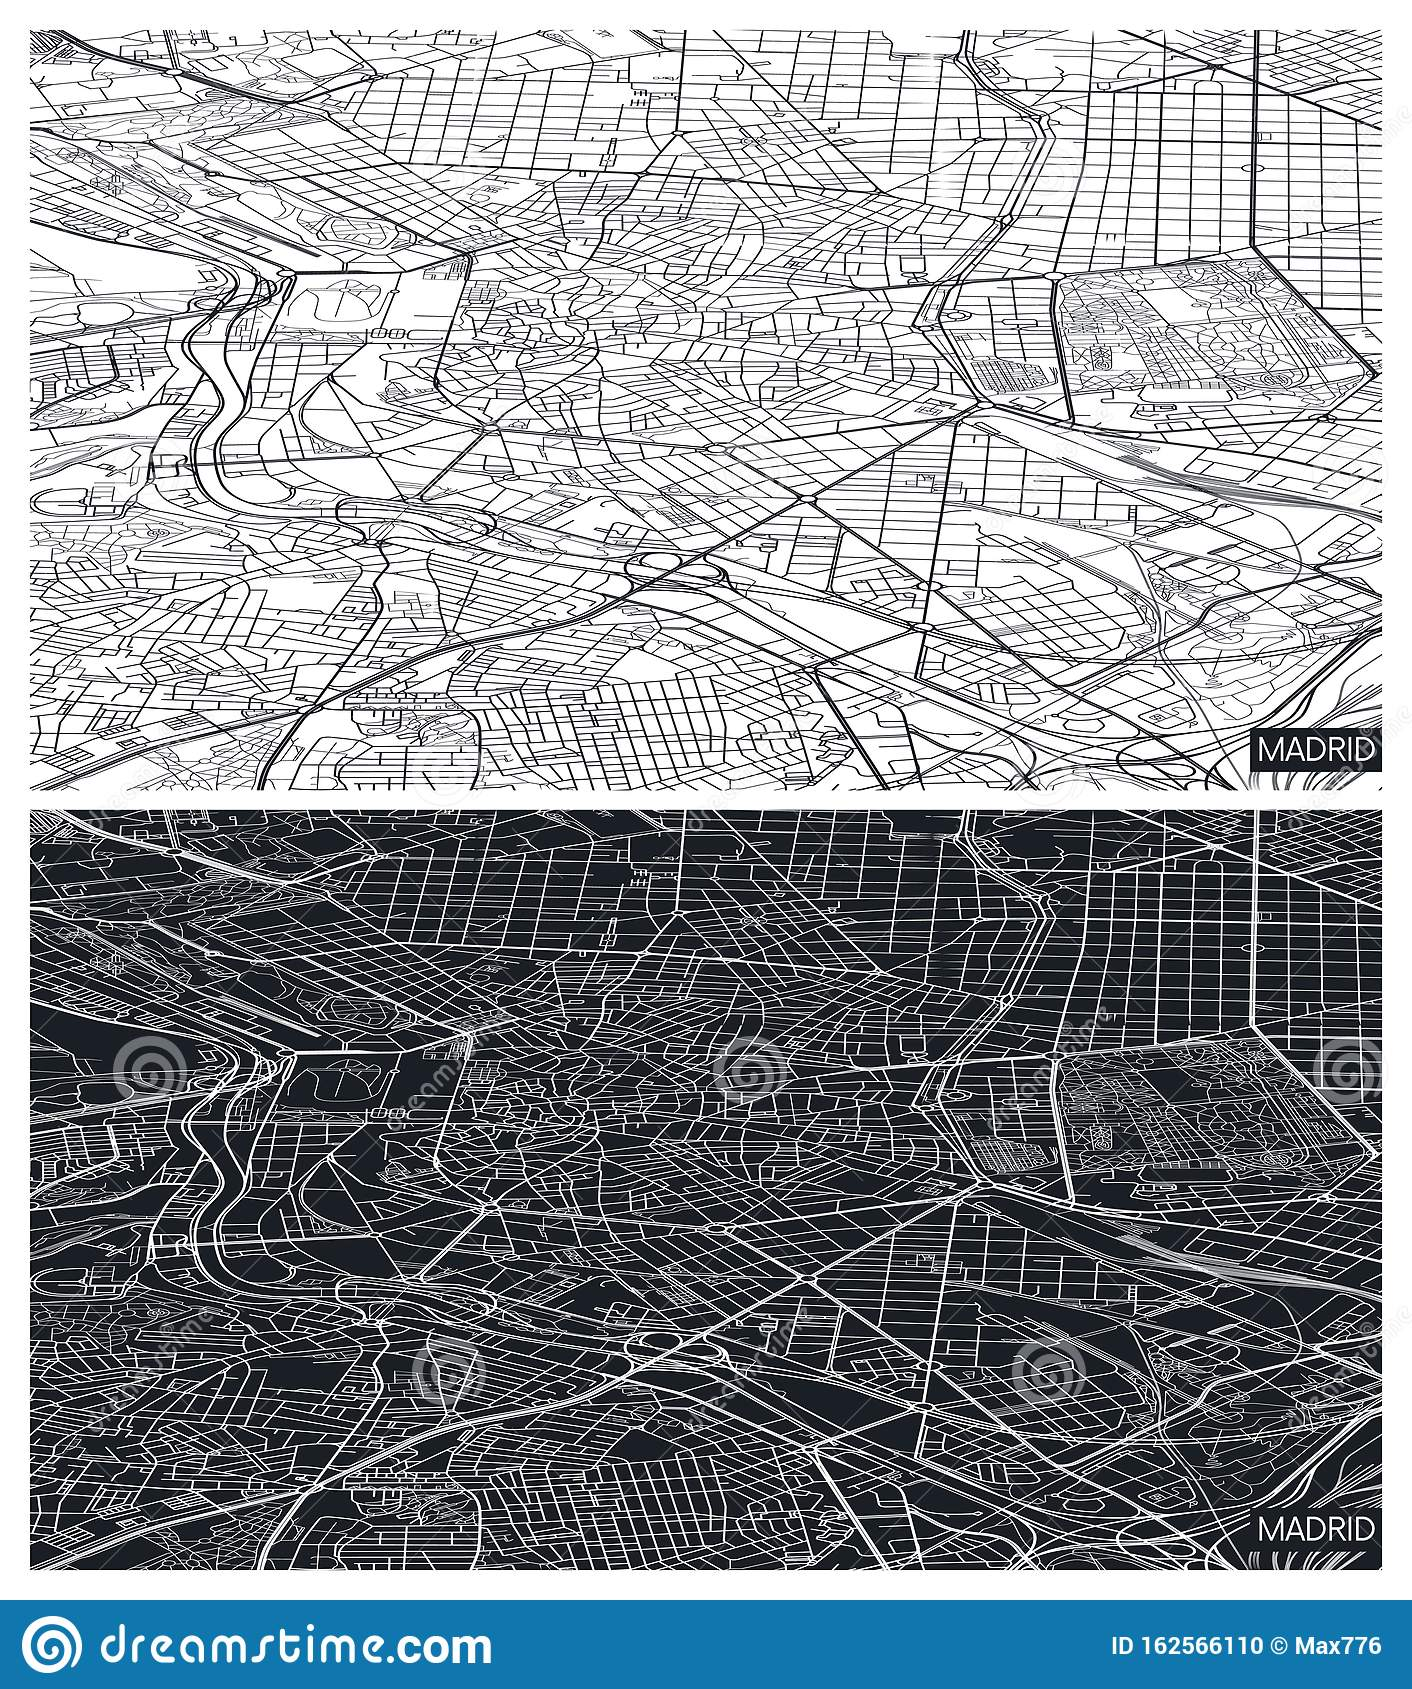 Black And White Madrid aerial top view city map madrid, black and white detailed